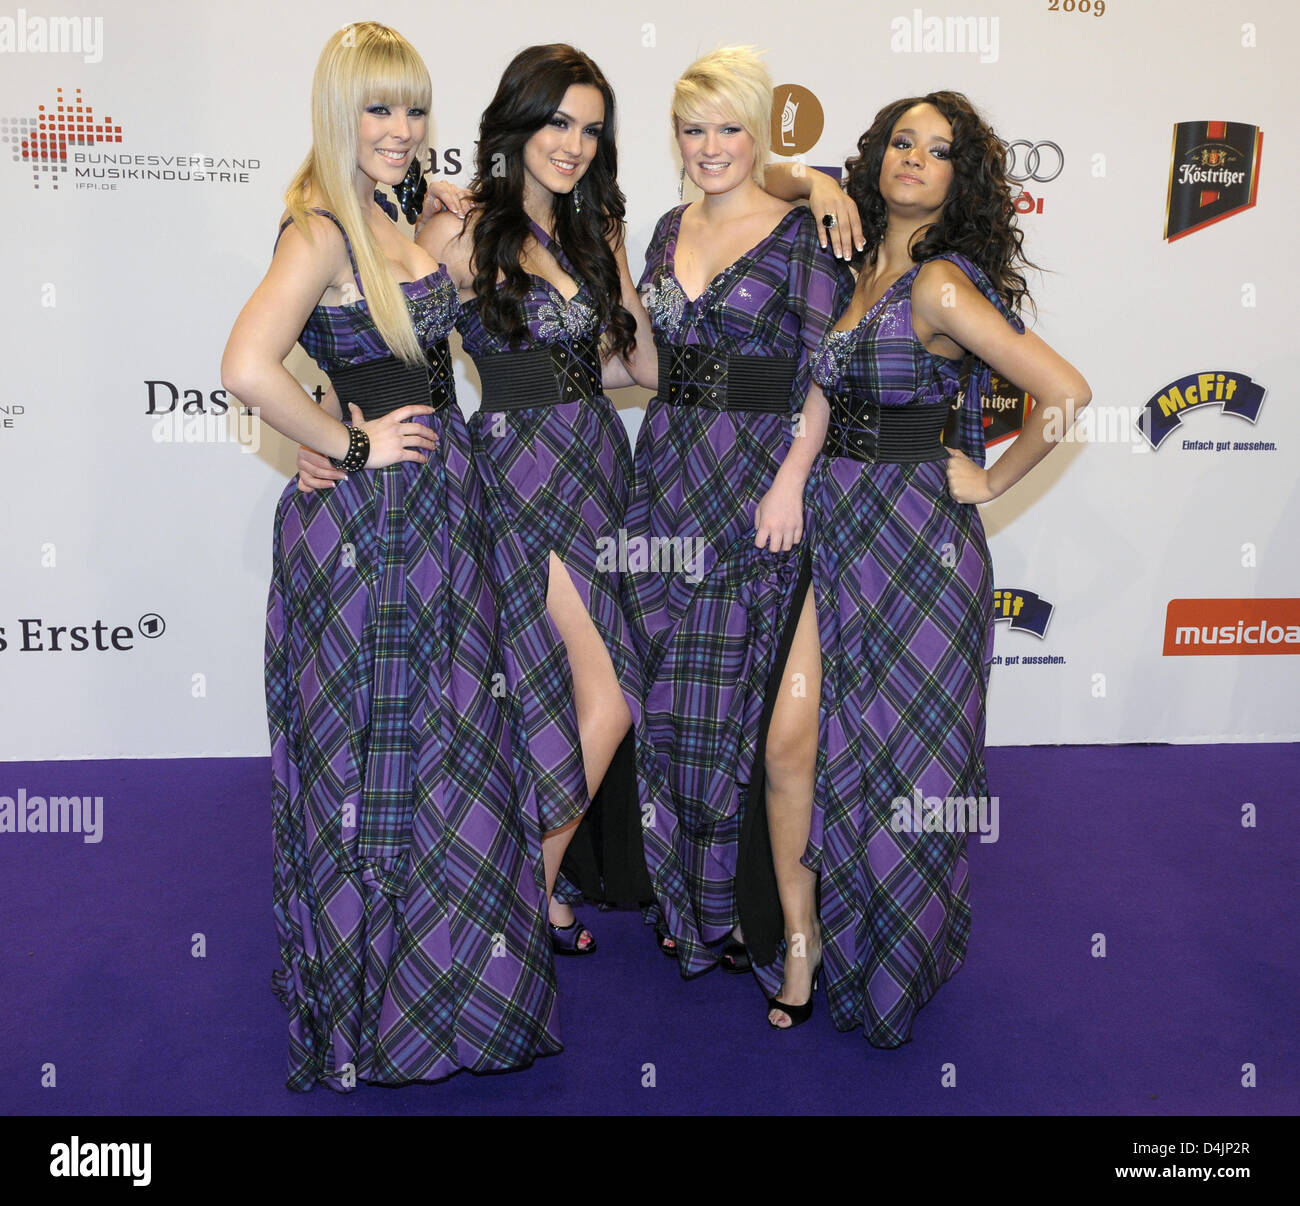 Members of band queensberry leo l r victoria vici antonella queensberry leo l r victoria vici antonella and gabriella arrive for the echo music award 2009 at o2 world in berlin germany 21 february 2009 voltagebd Images